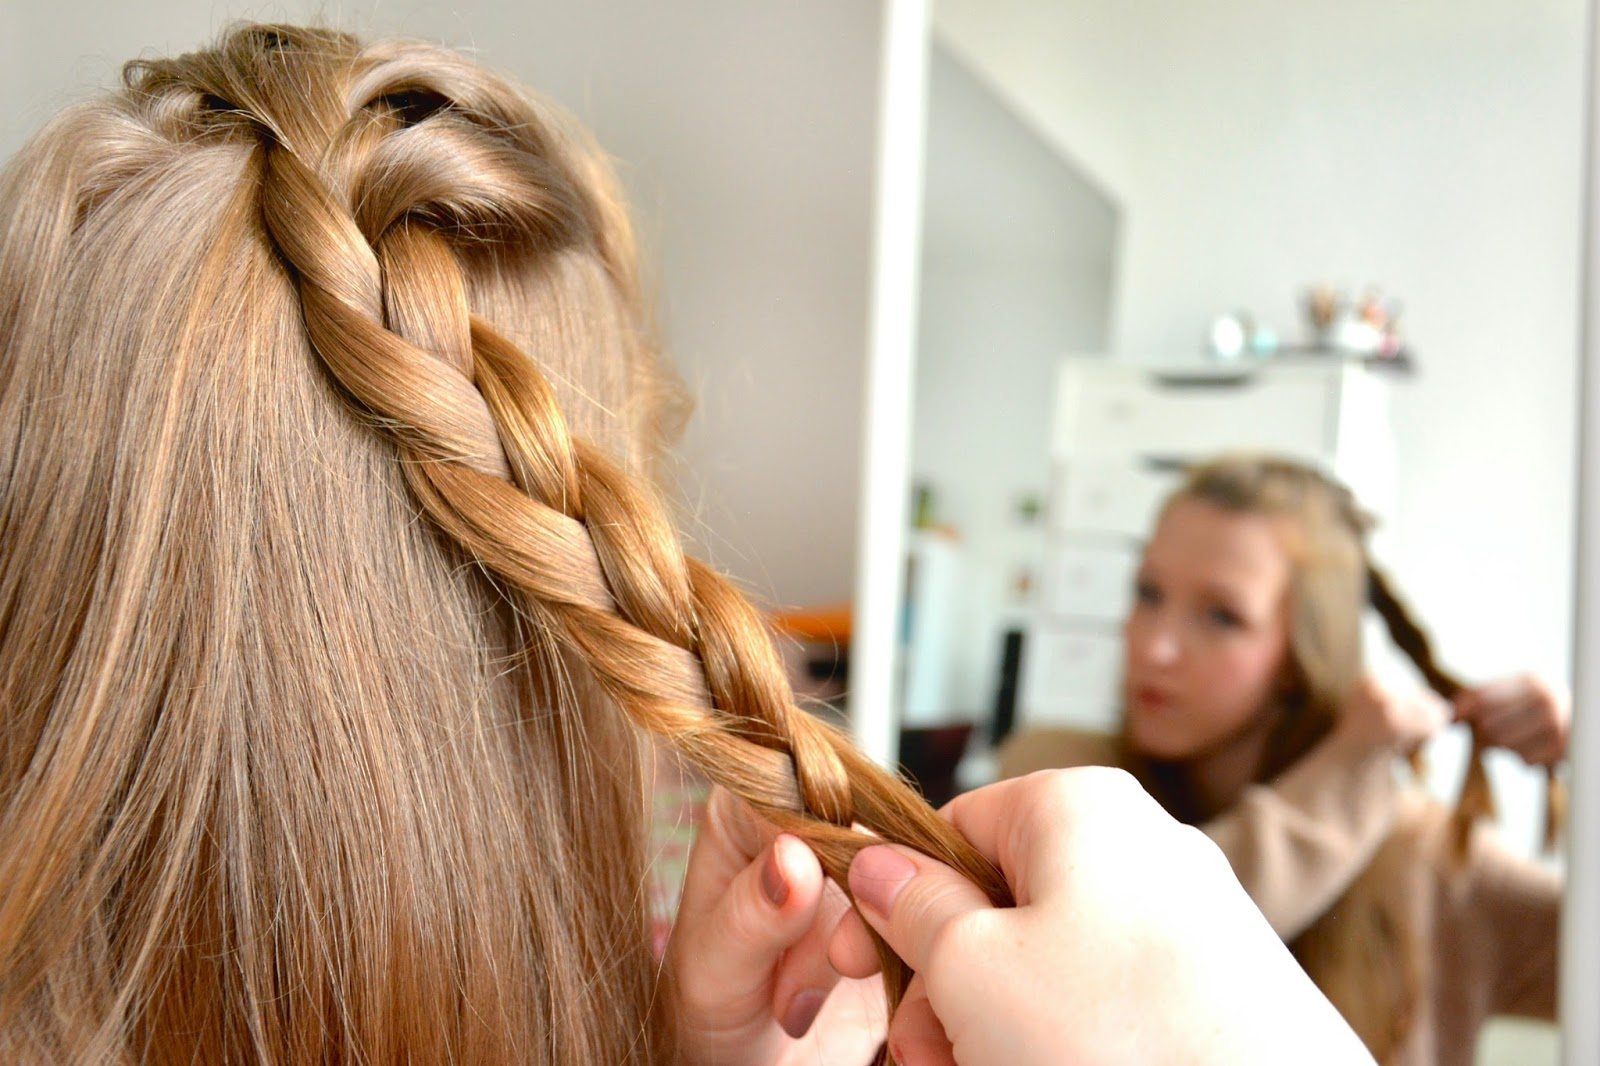 Girl in front of mirror; blonde hair; hair styling; braid